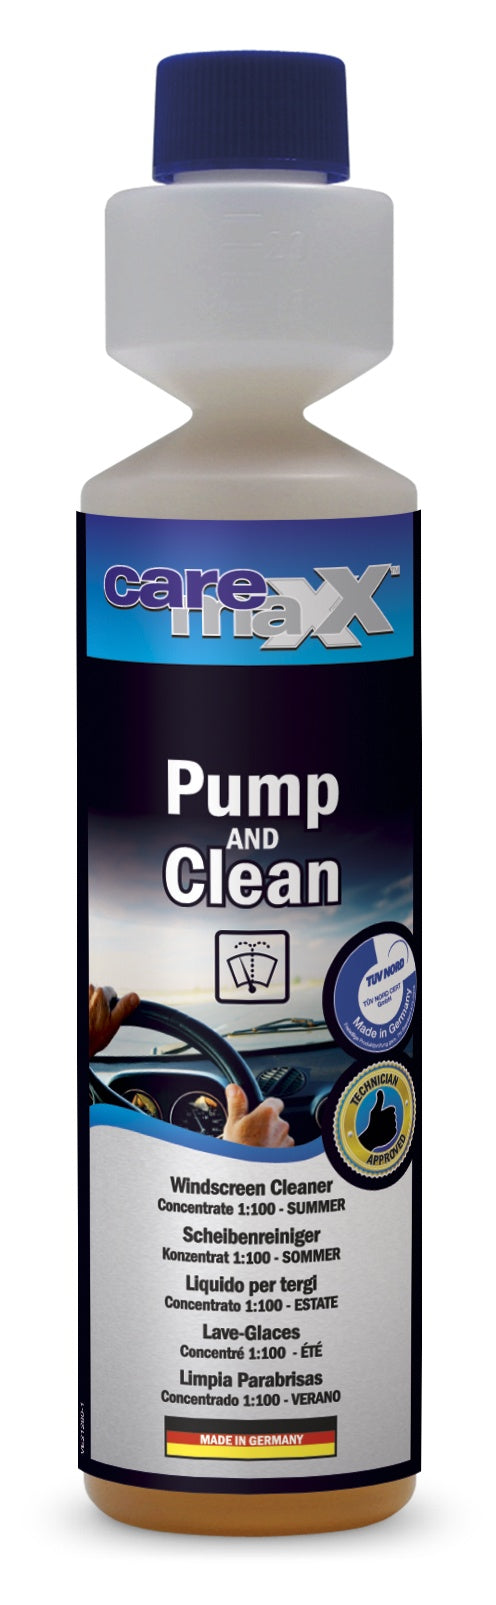 Pump & Clean Windscreen Cleaner Concentrate 1:100 - Just European